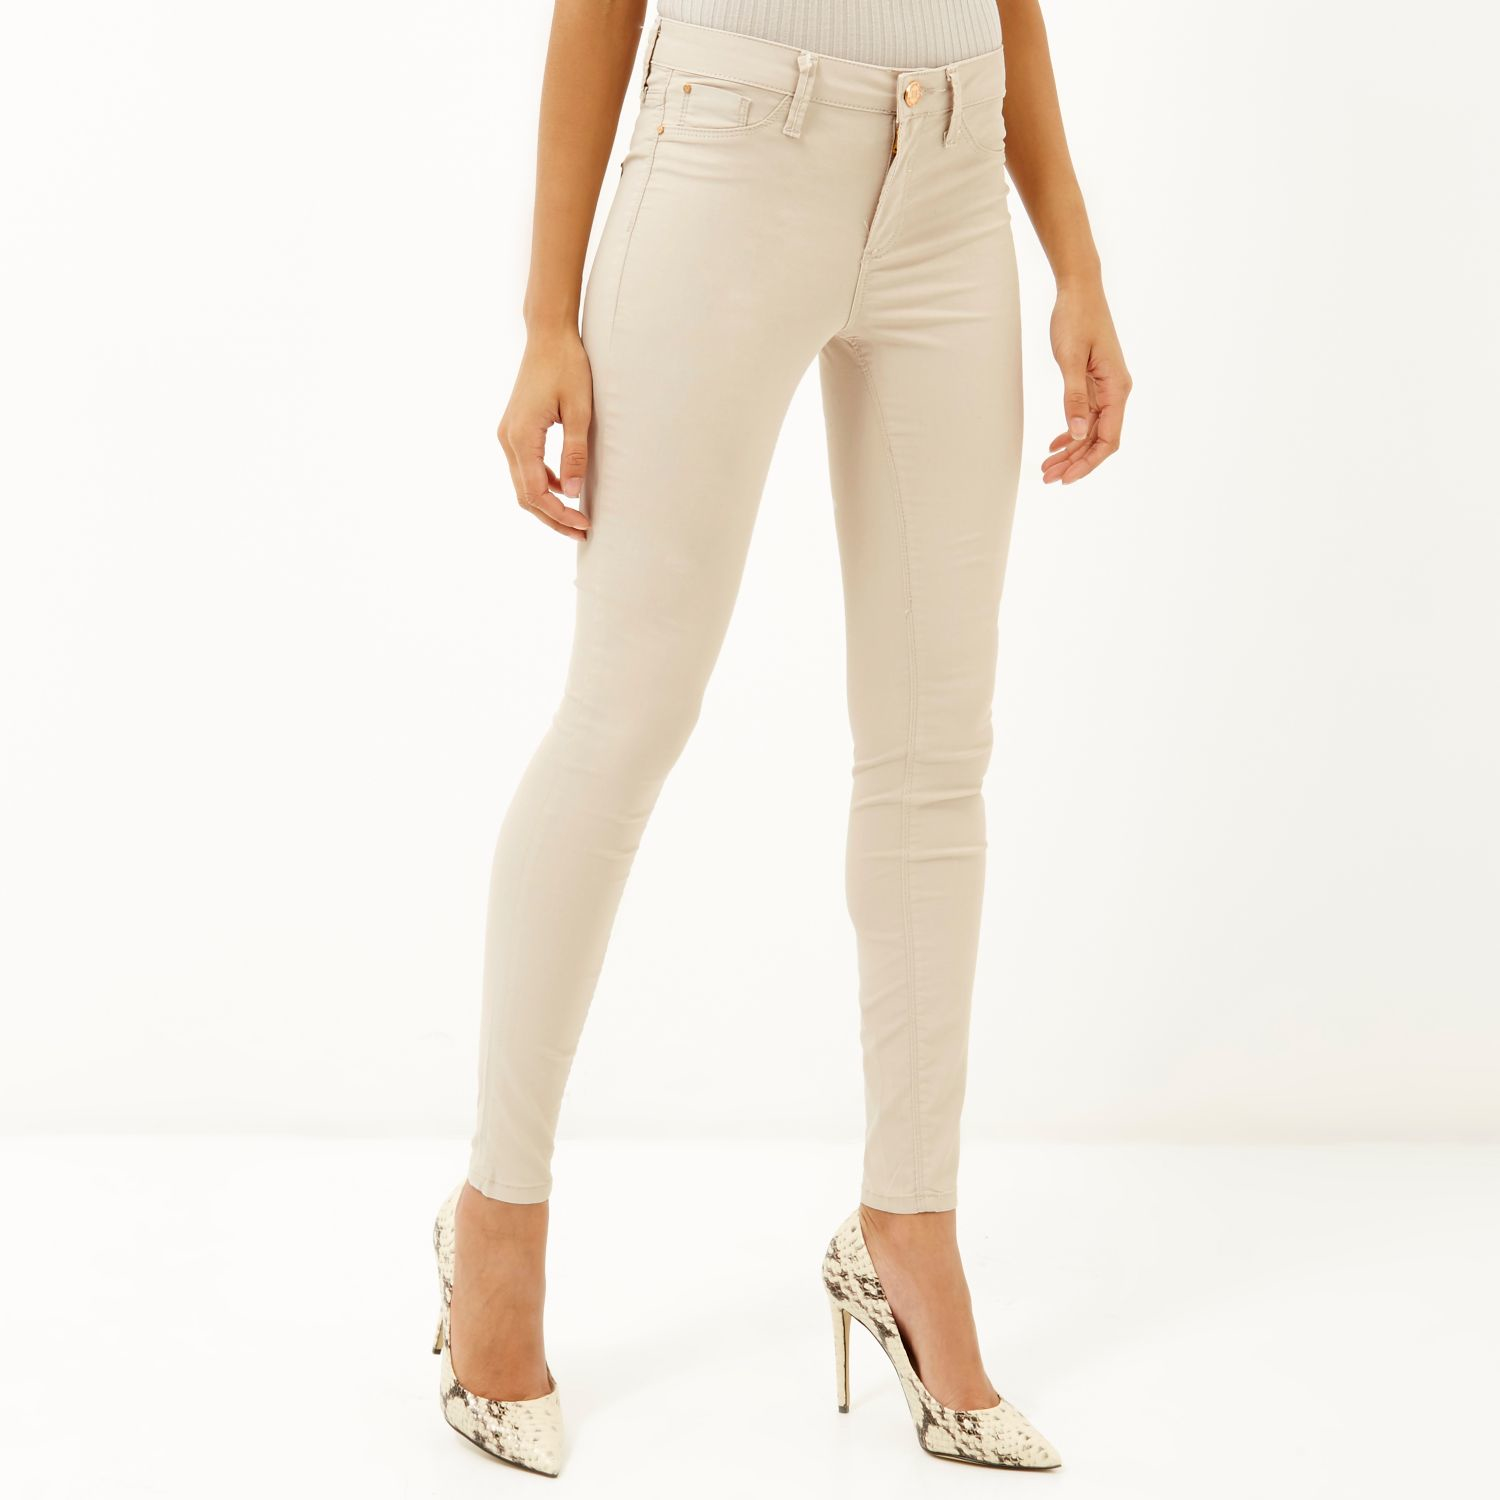 423905a355 River Island Cream Coated Molly Jeggings in Natural - Lyst